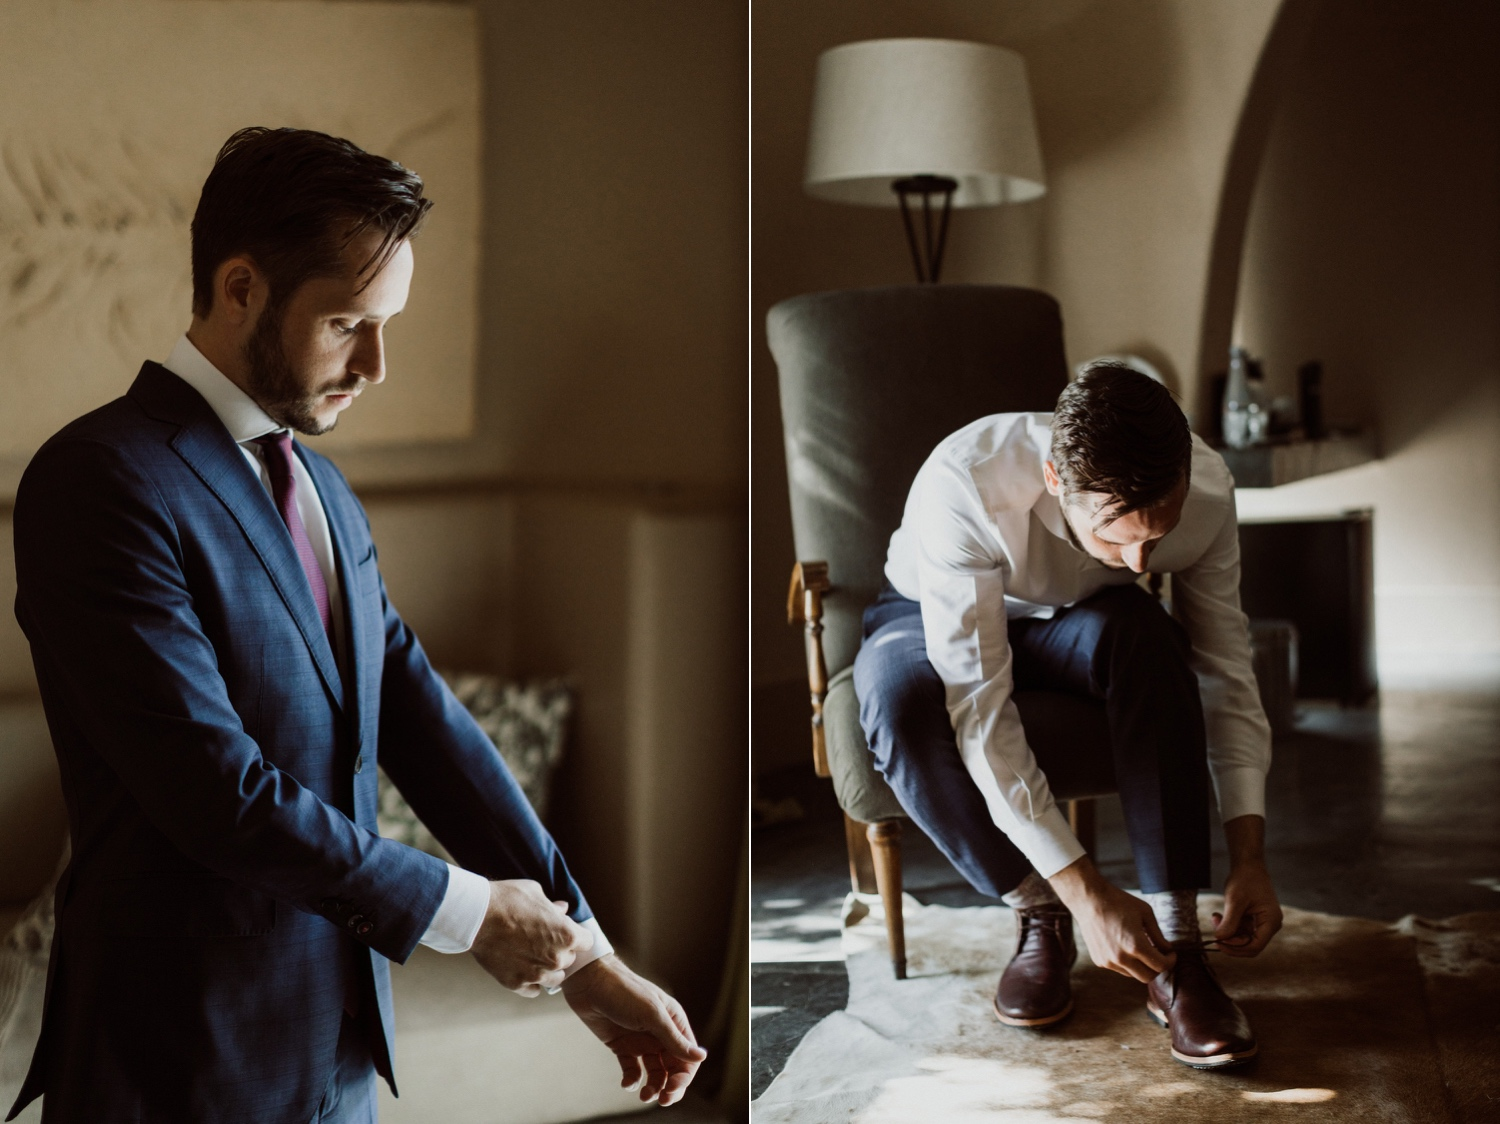 032_ready_shoes_groom_supply_suit_getting.jpg